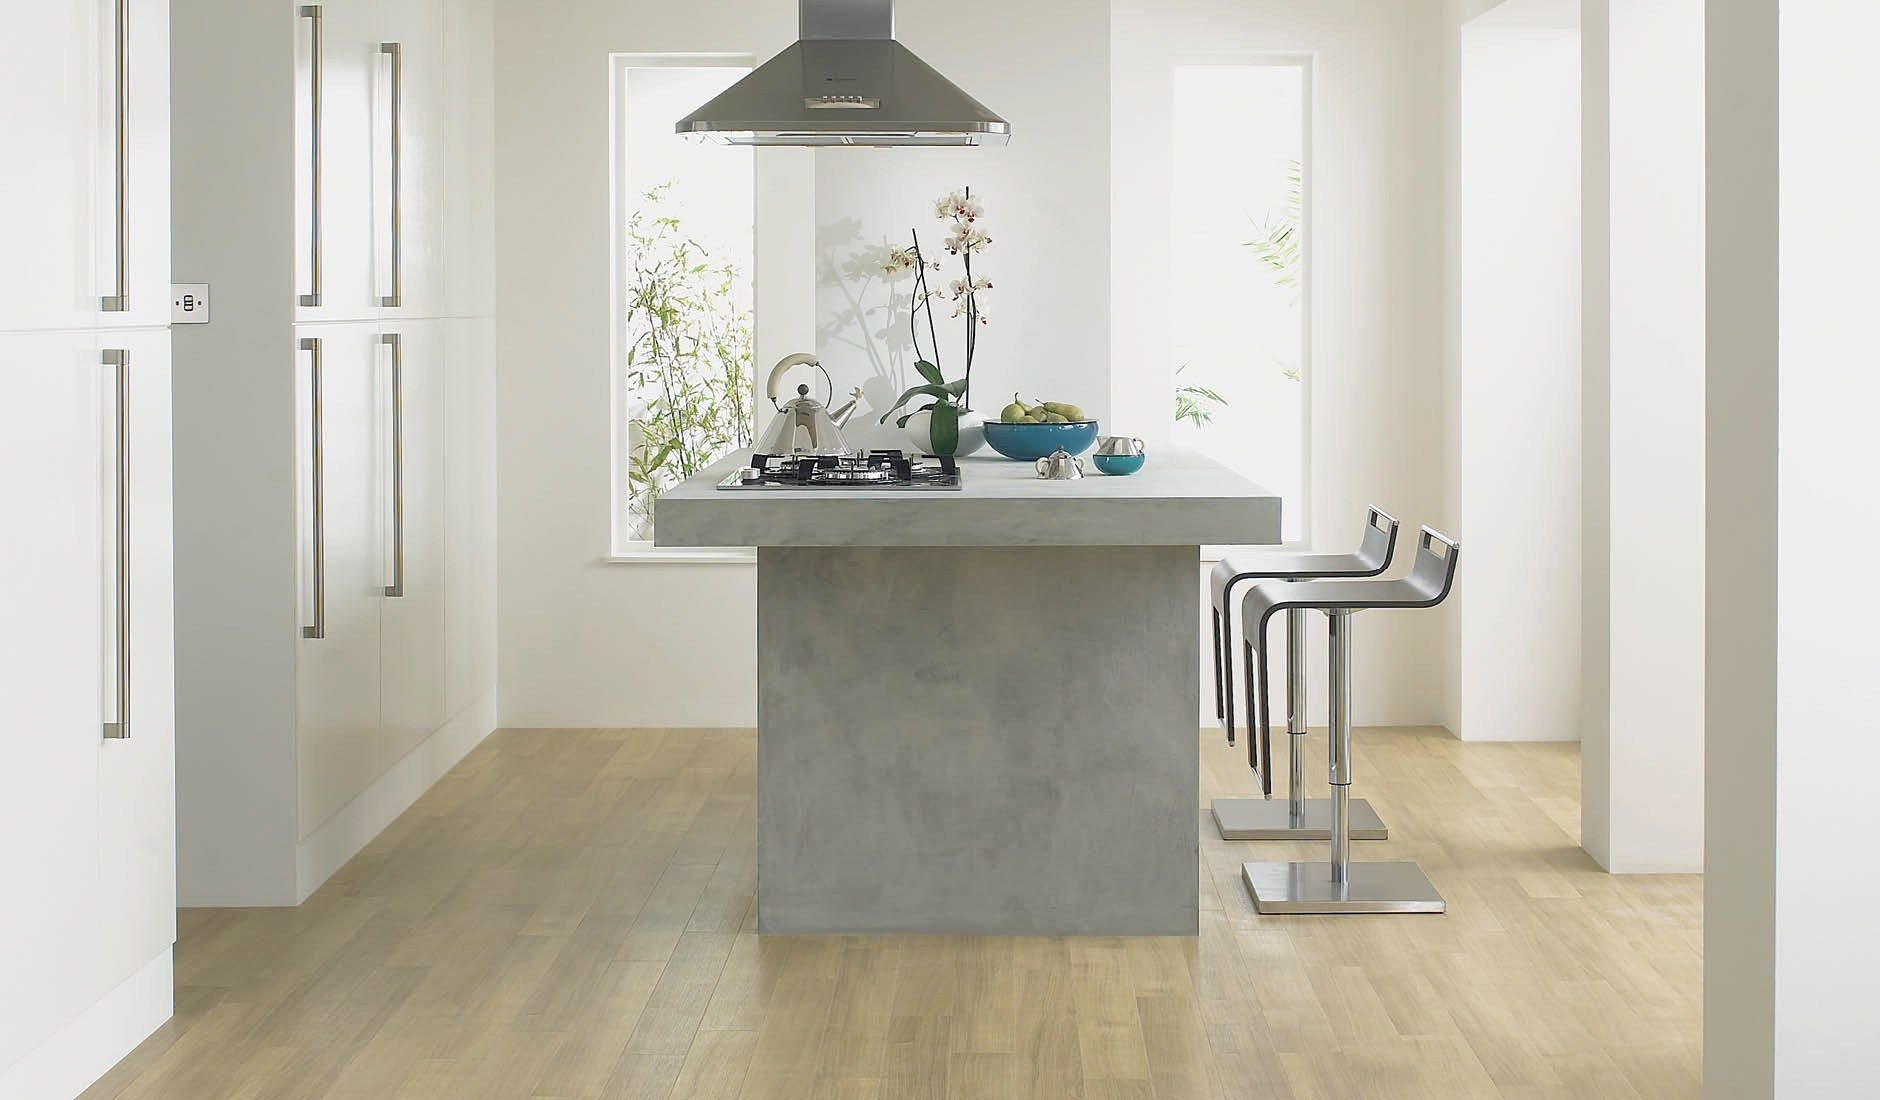 Amtico Kitchen Flooring White Oak Floors Wood Flooring White Oak In A Kitchen Amtico